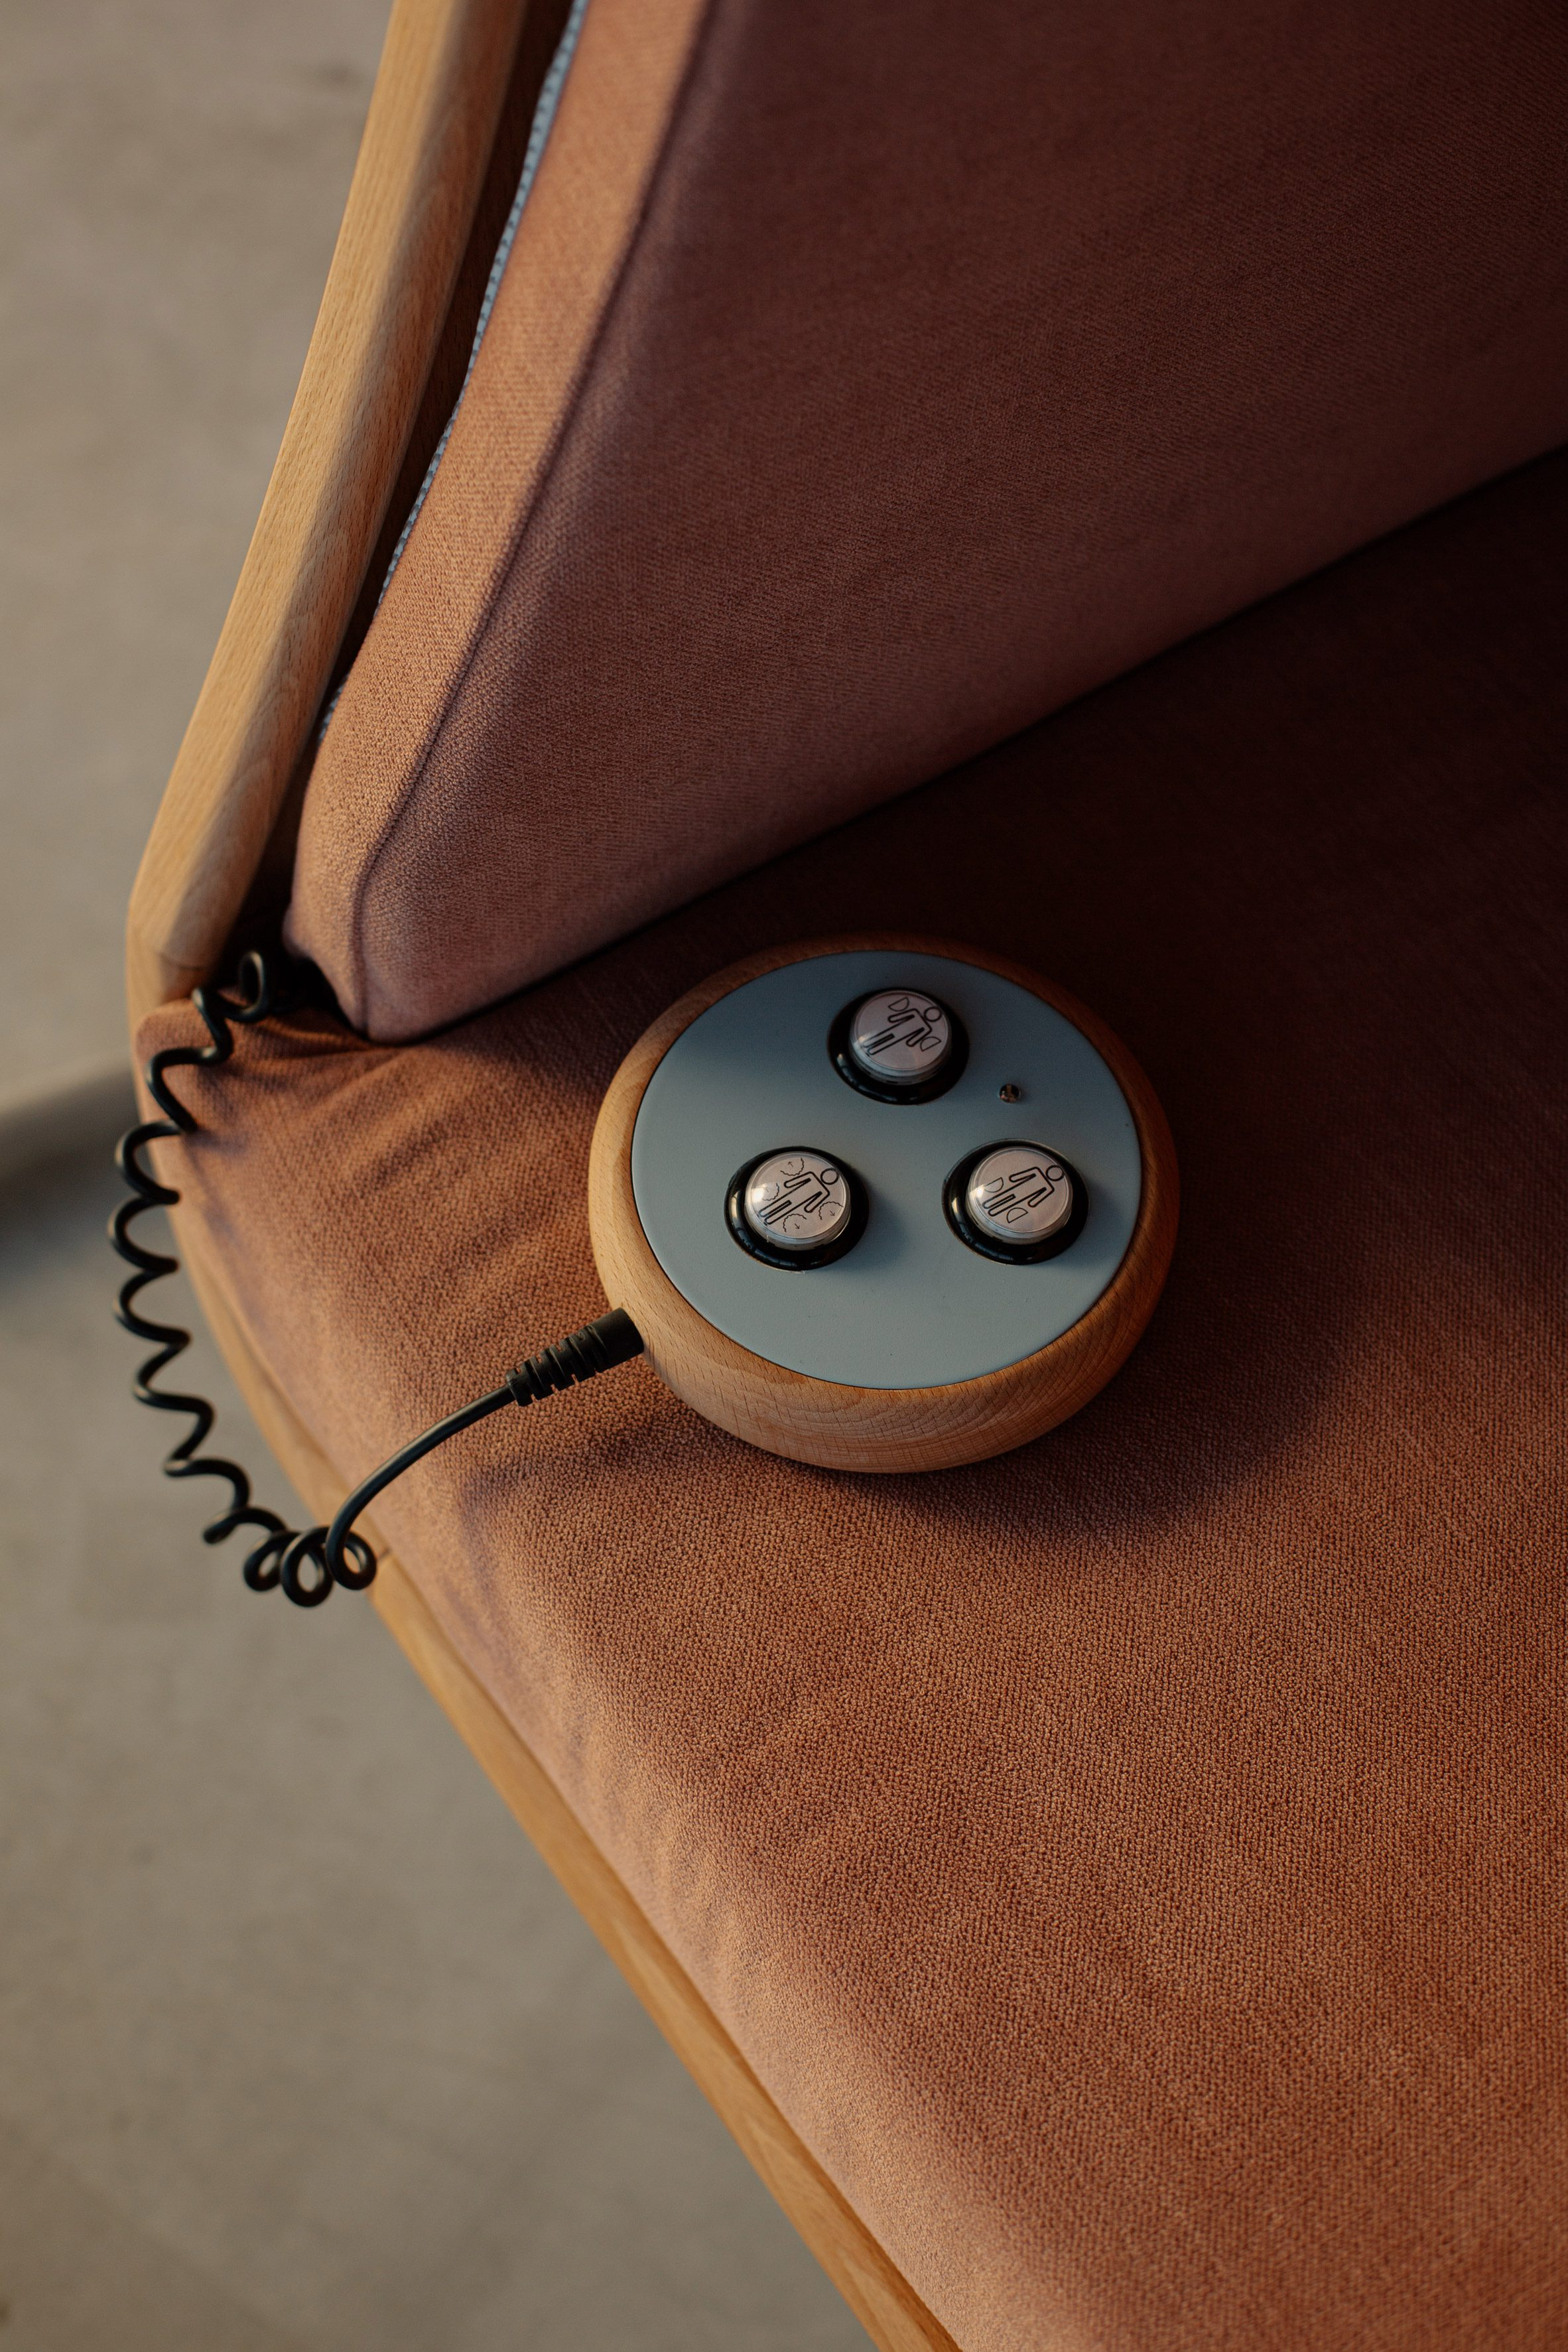 Remote control of Oto hugging chair